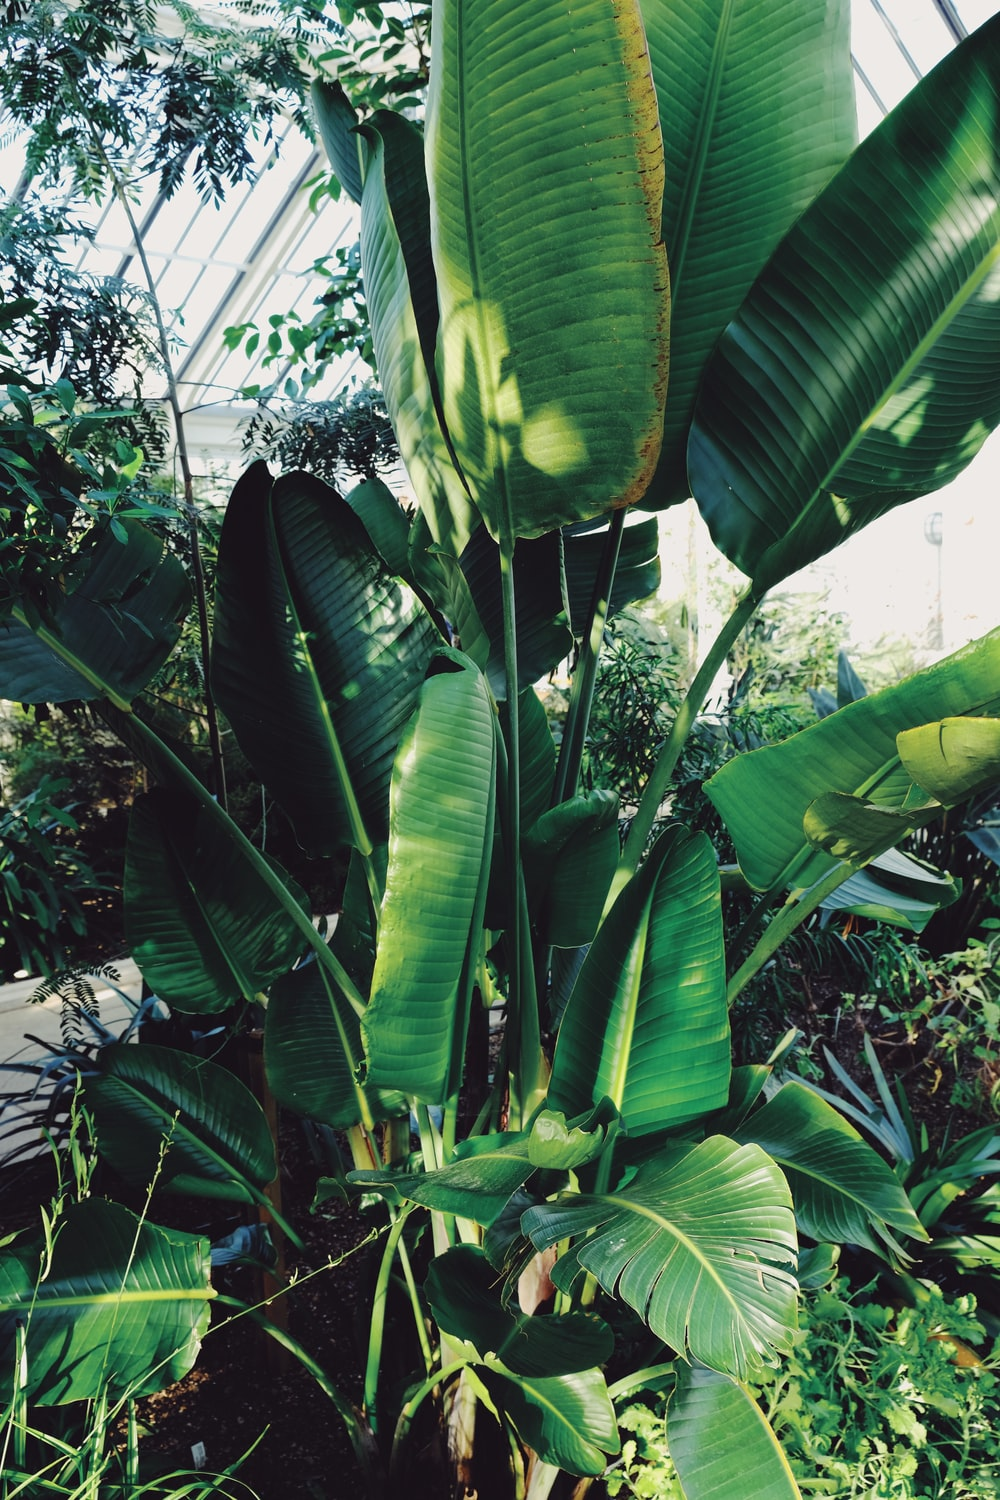 banana tree during day time